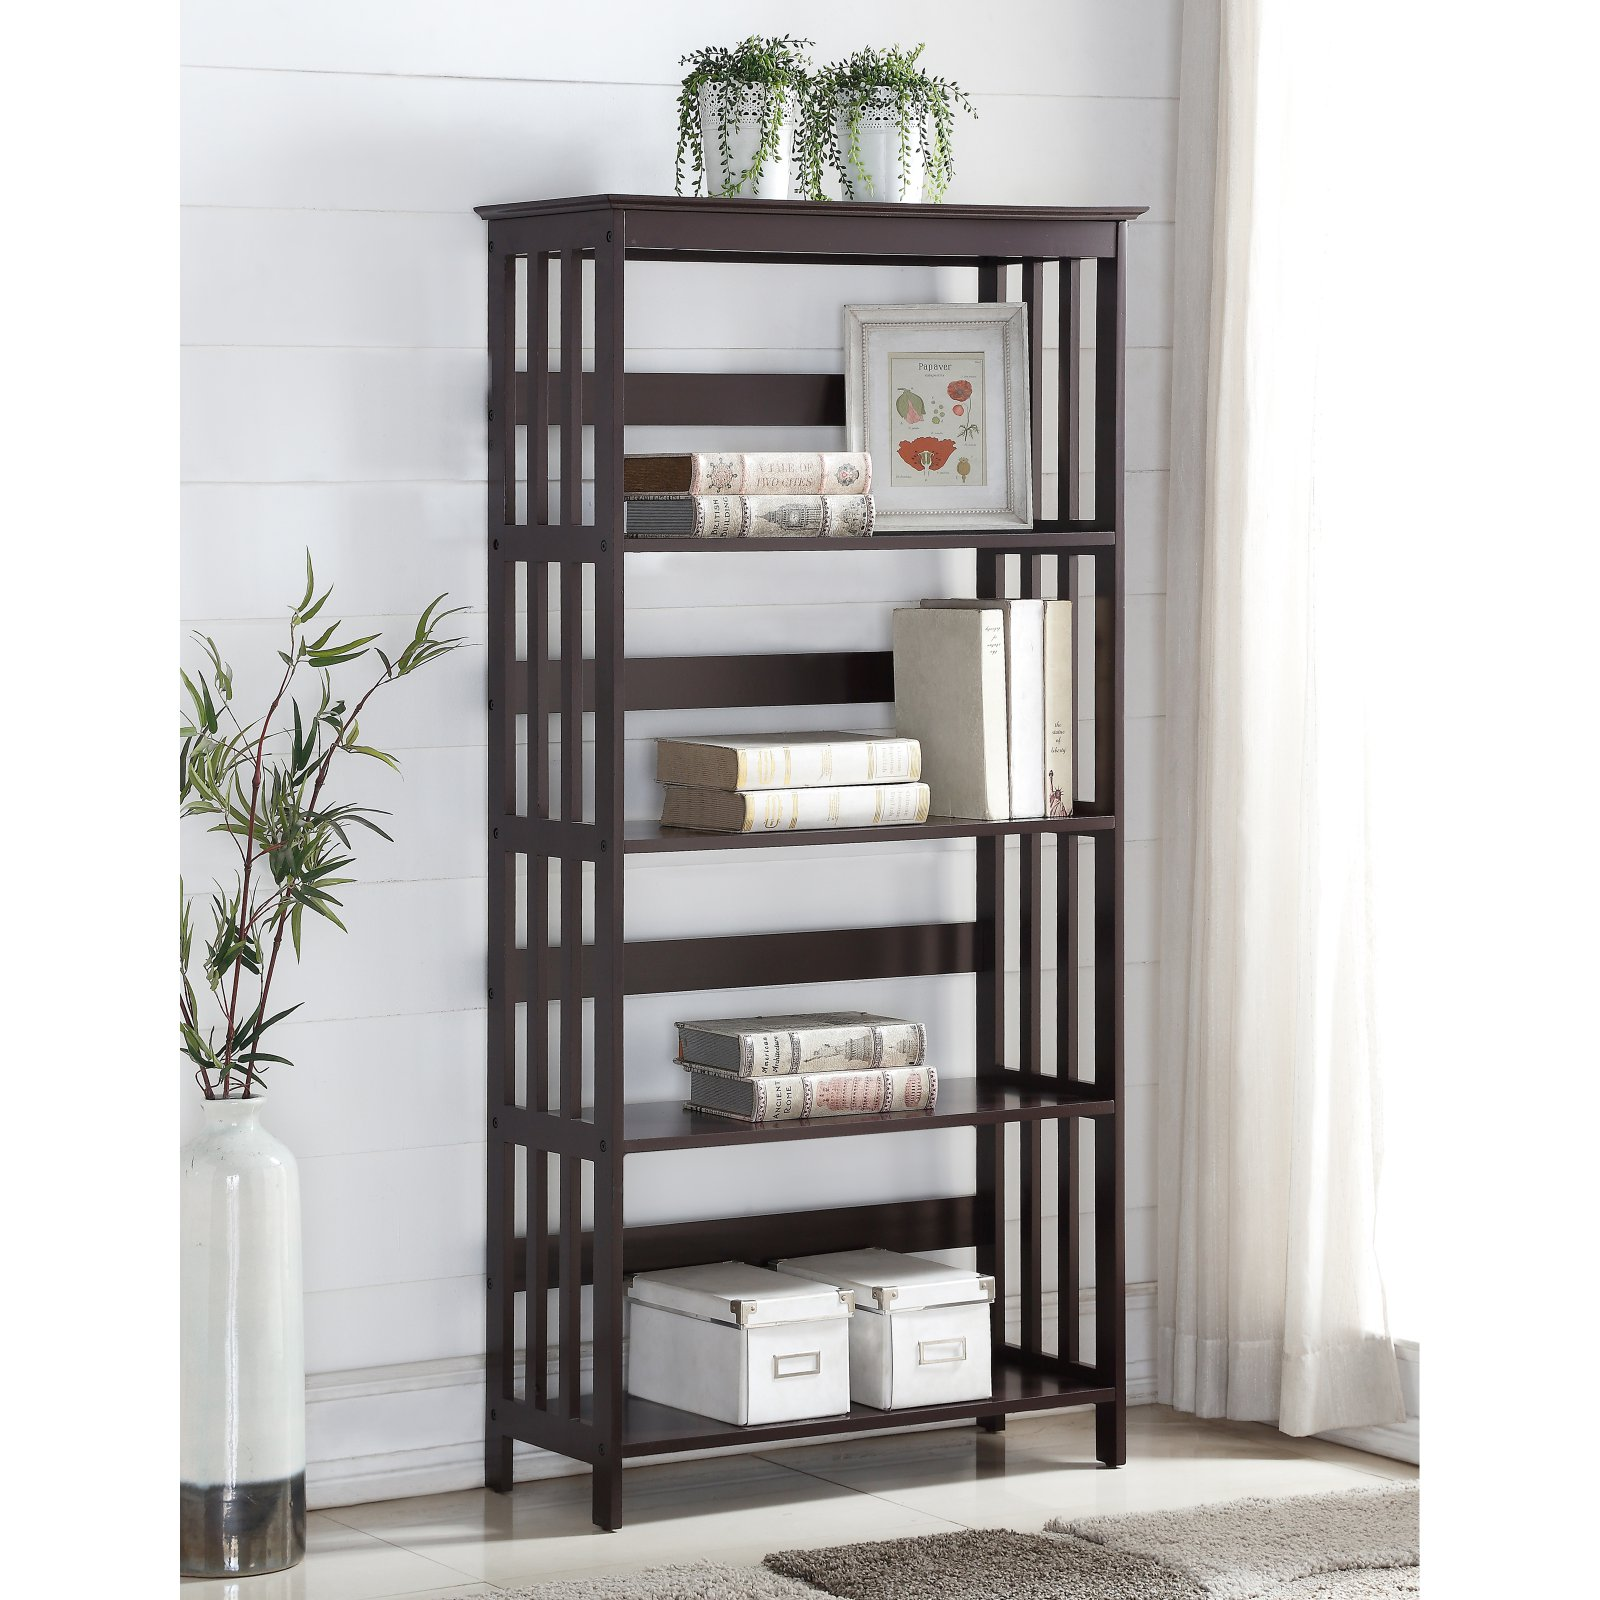 Roundhill Wooden 4 Shelves Bookcase, Espresso Finish